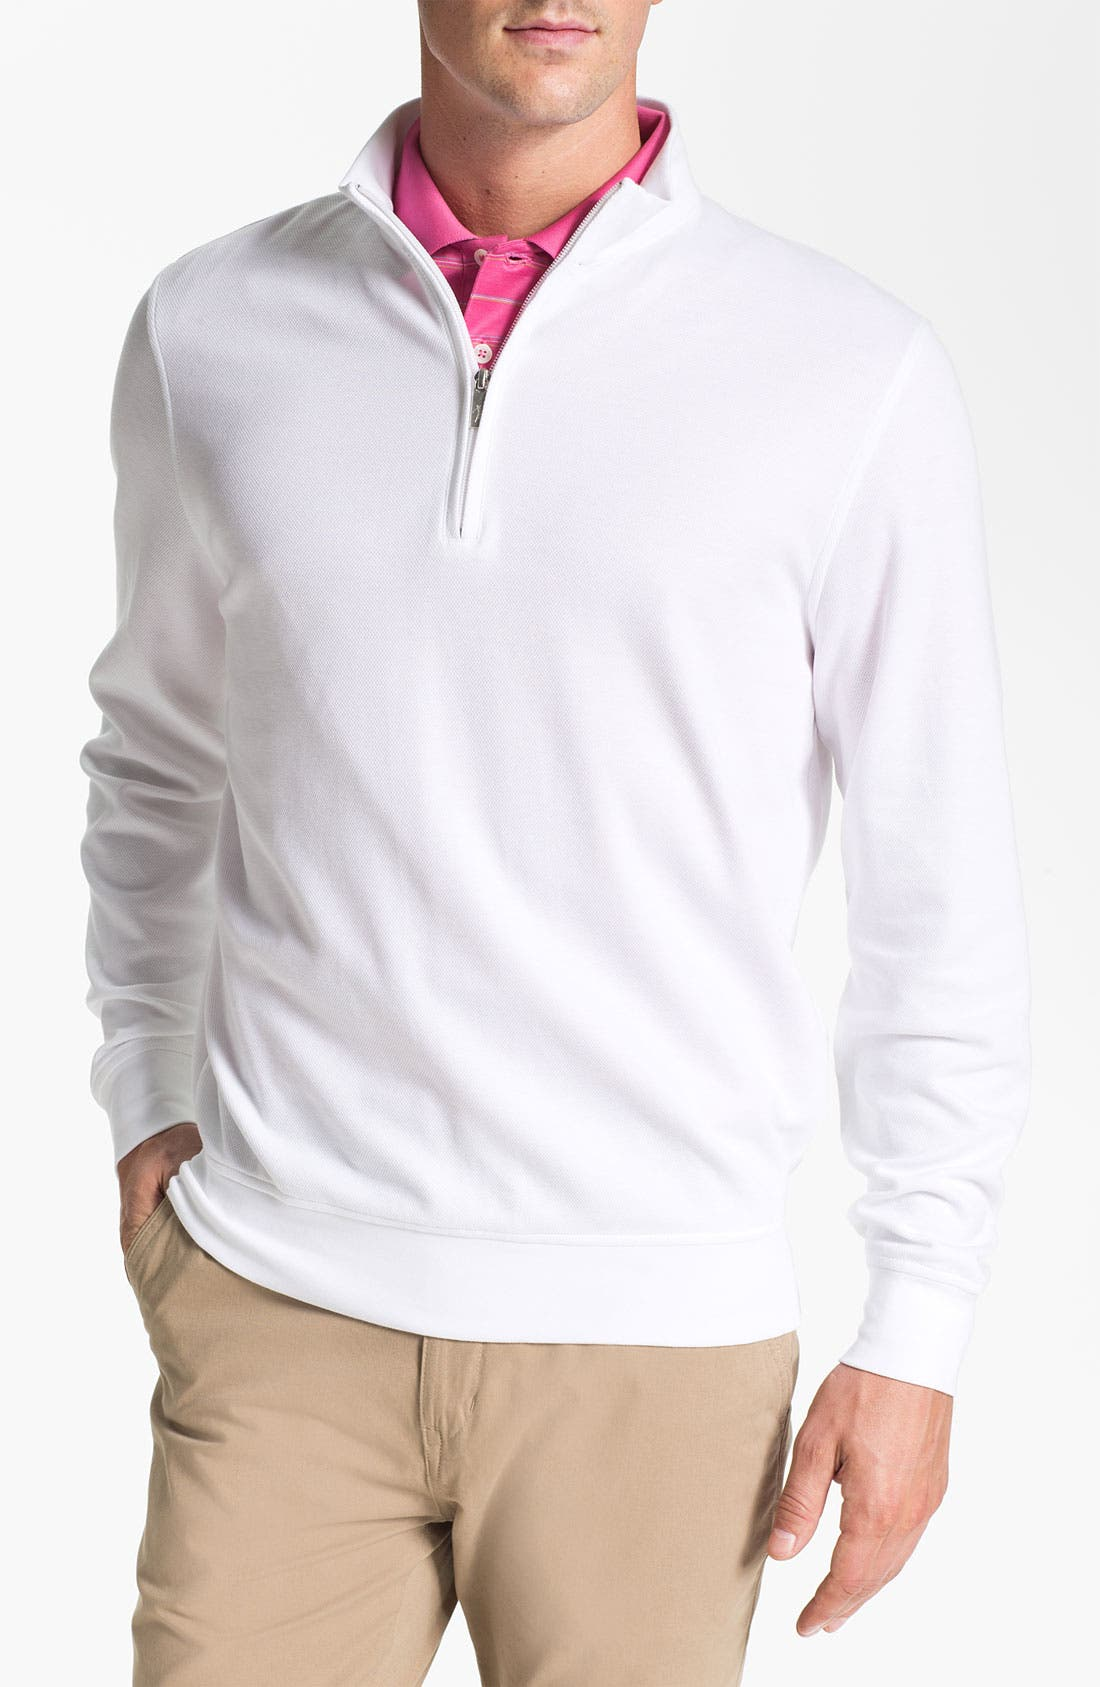 Alternate Image 1 Selected - Bobby Jones Quarter Zip Jacquard Pullover